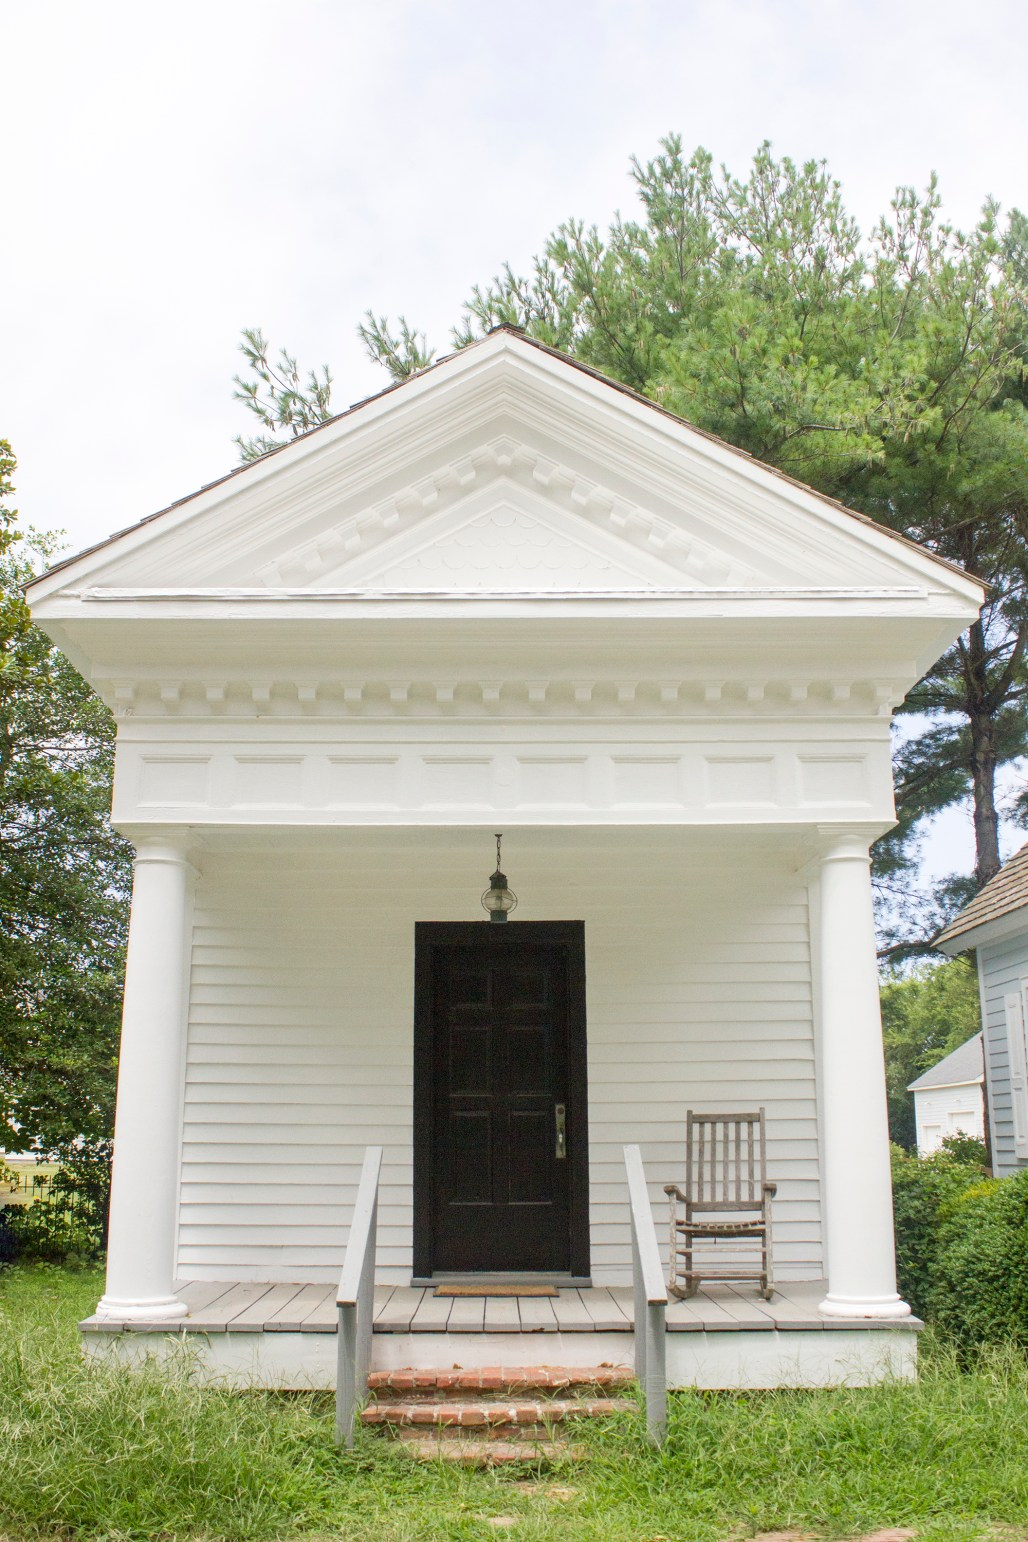 The front of the doctor's office, with a small porch and rocking chair.